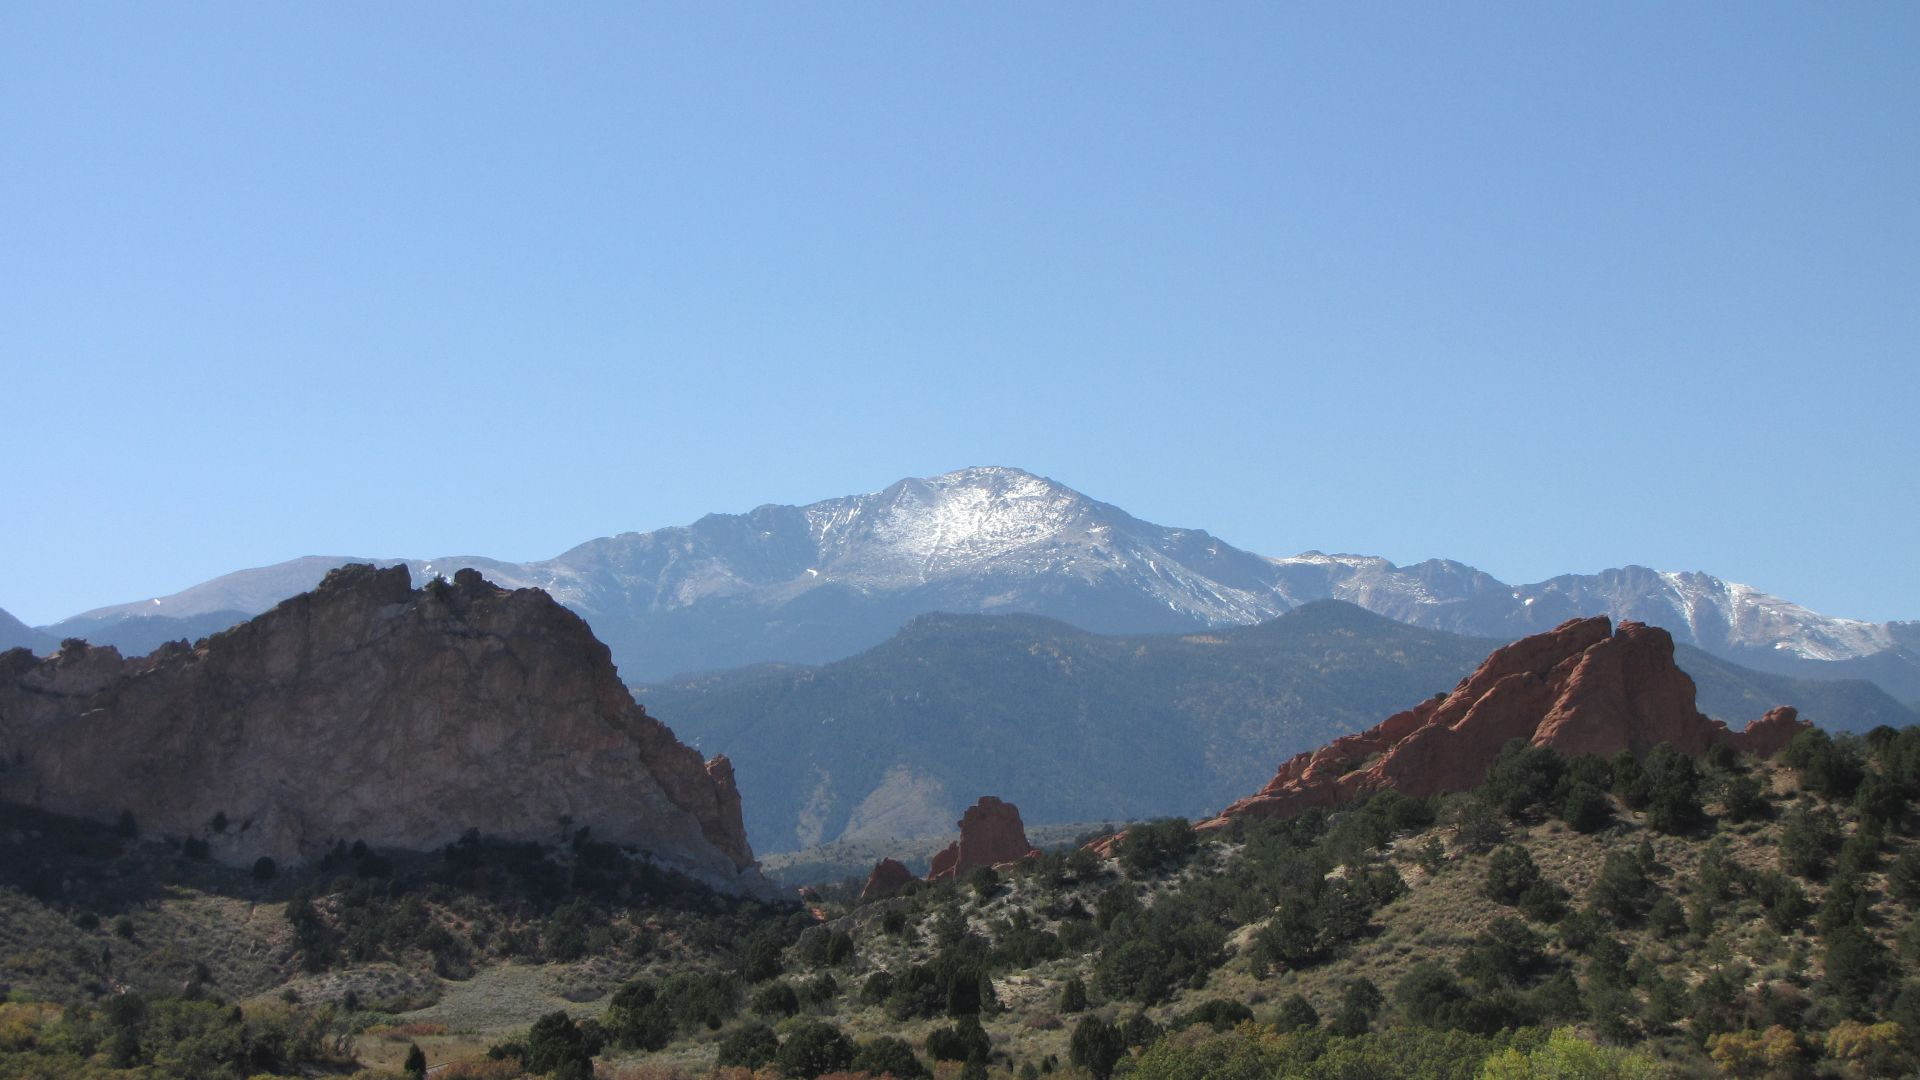 Garden of the Gods, nr CO Springs, CO, USA - Pikes Peak